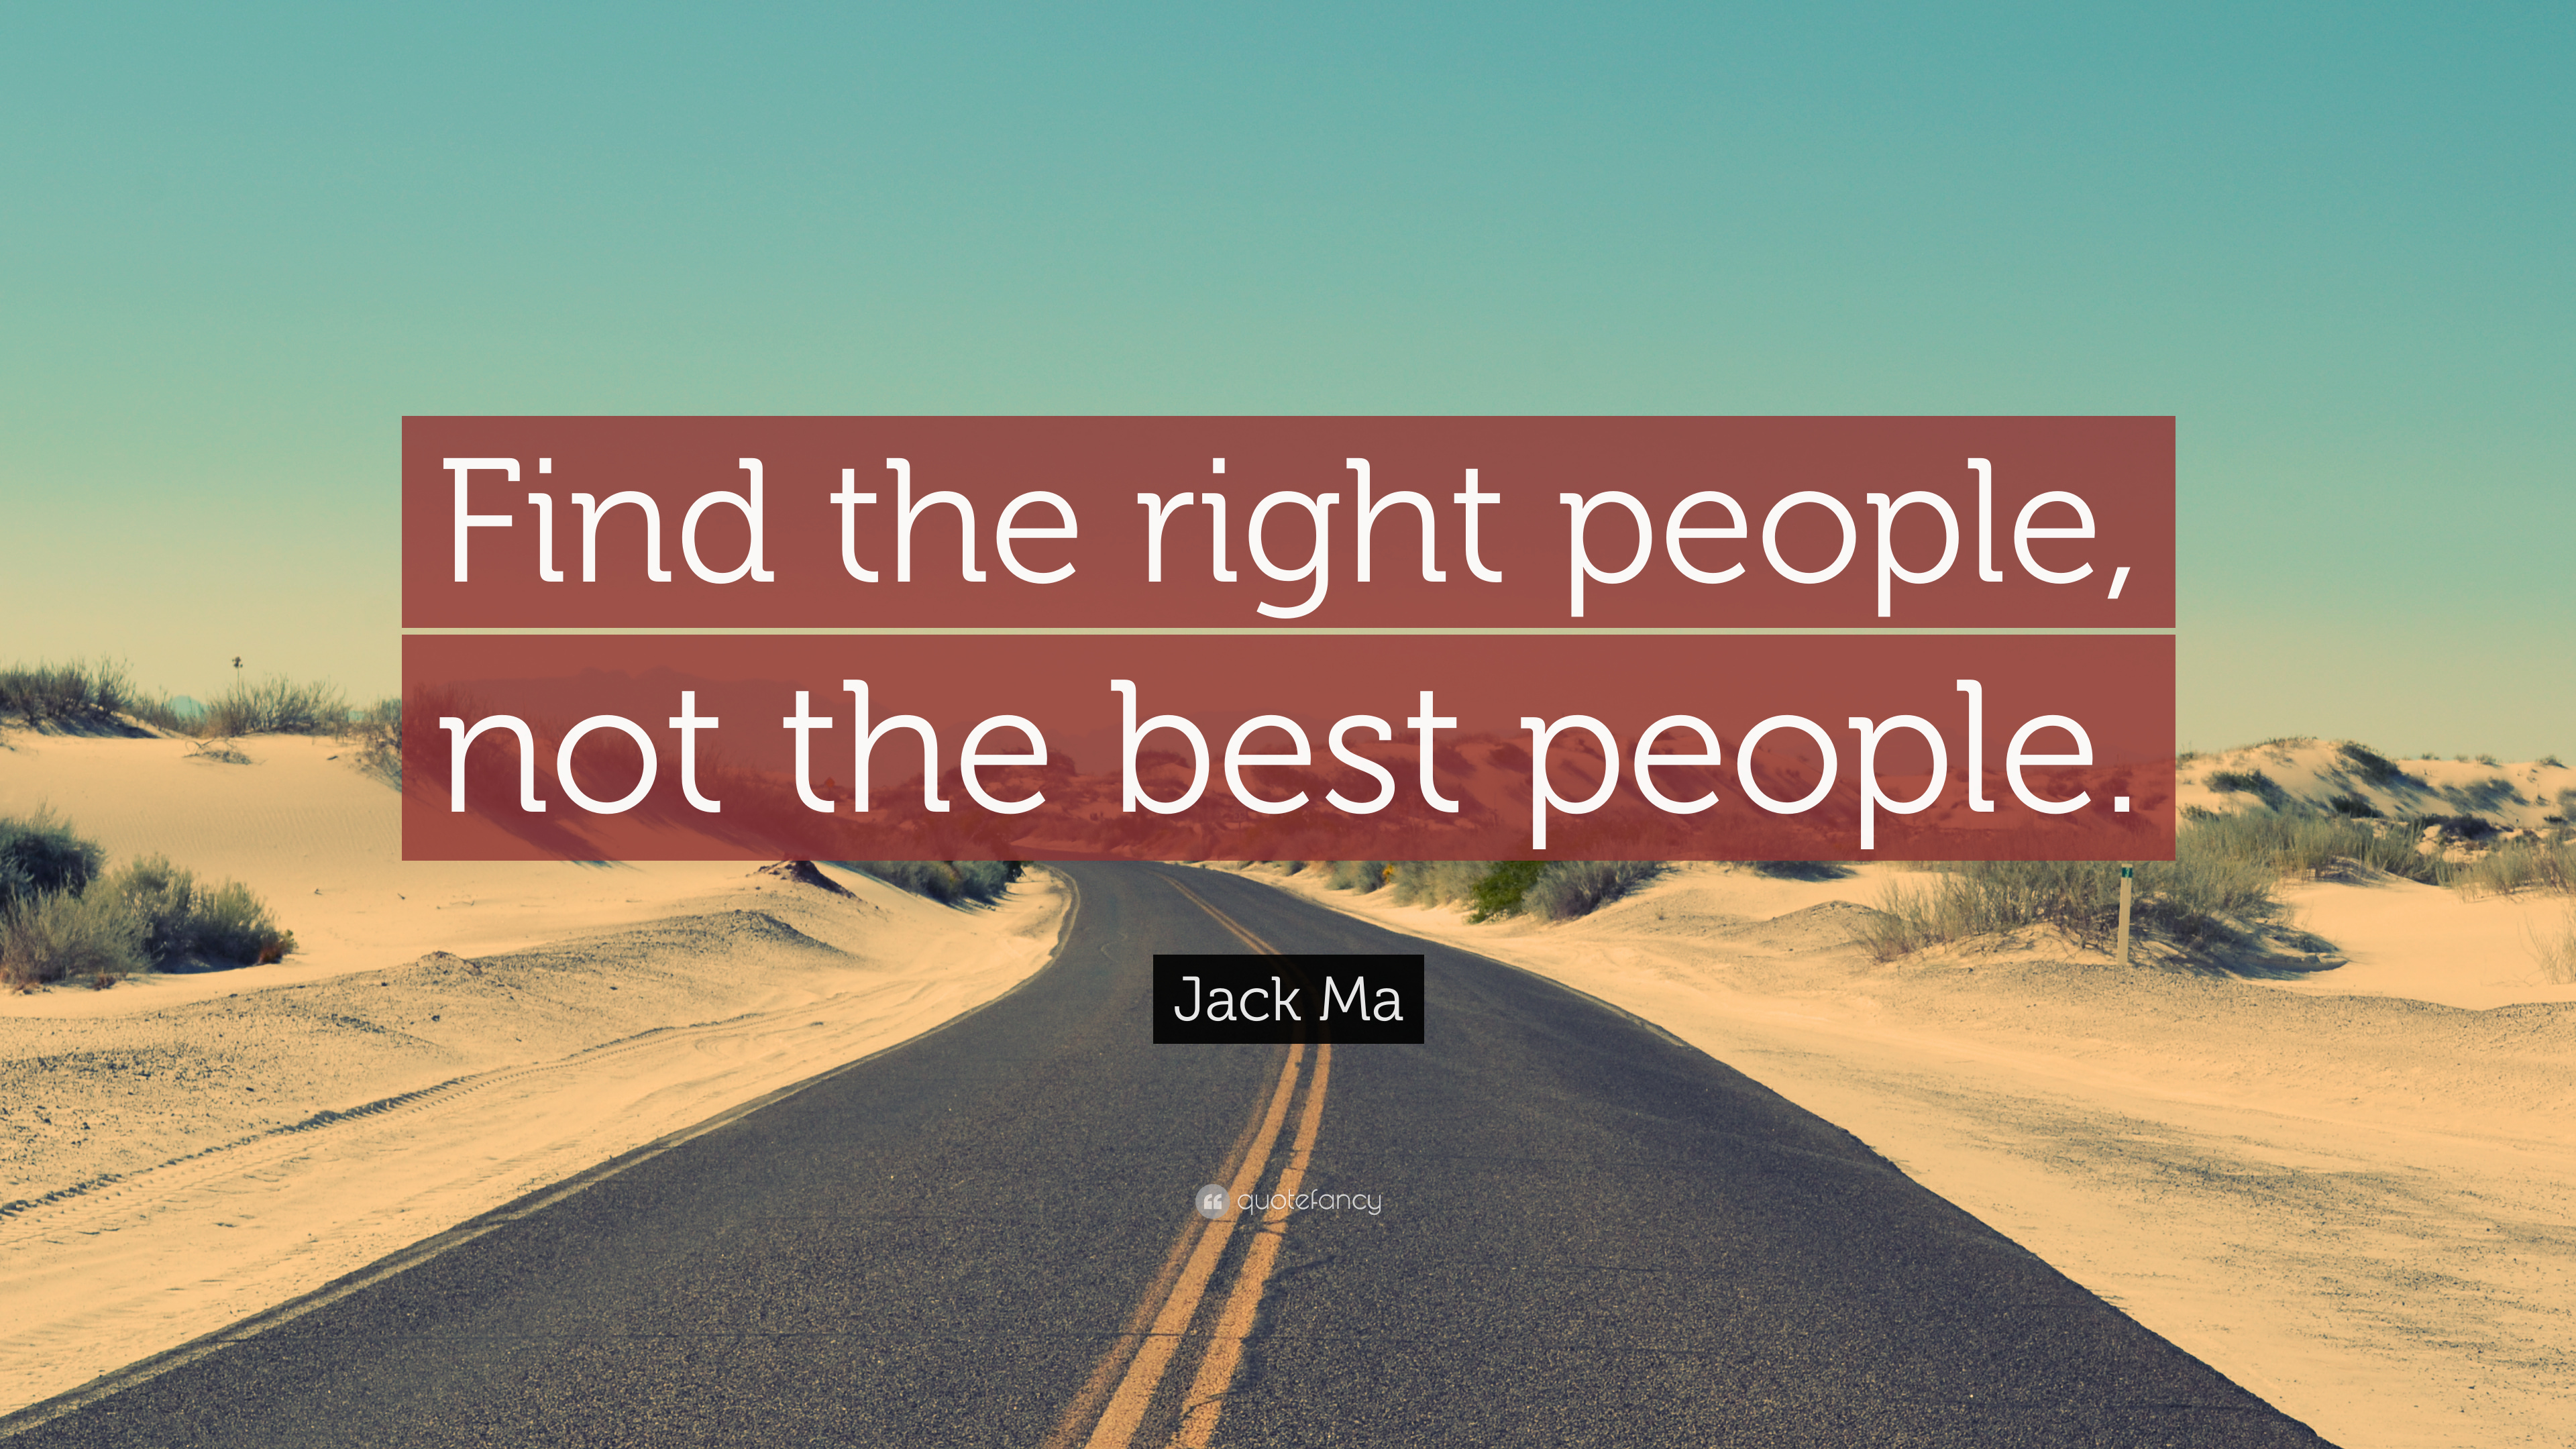 Jack Ma Quote: Find the right people, not the best people